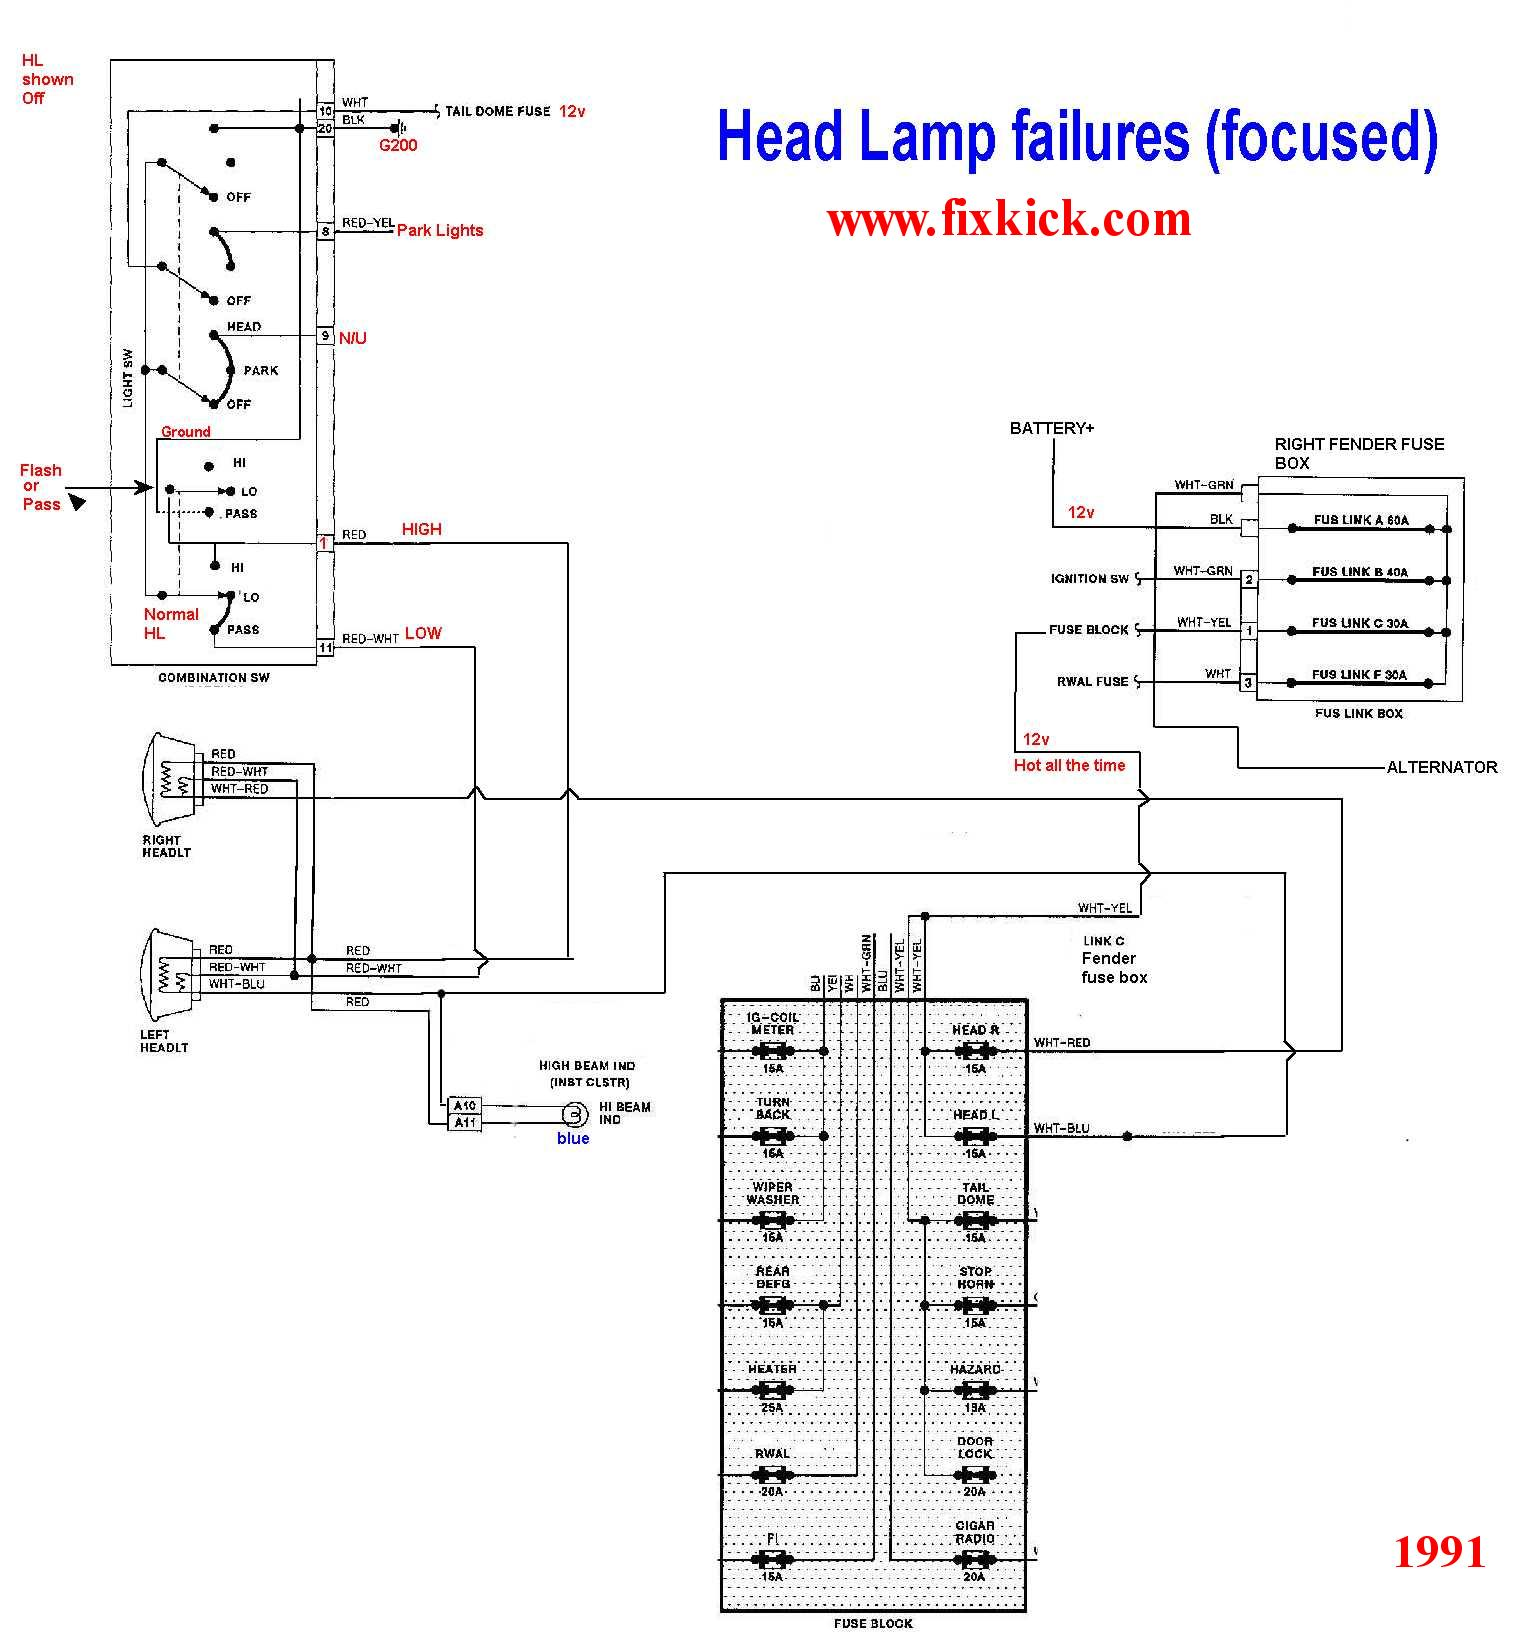 DIAGRAM] Geo Tracker Radio Wiring Diagram FULL Version HD Quality Wiring  Diagram - EXPERTSDESRESEAUX.NIBERMA.FRexpertsdesreseaux.niberma.fr